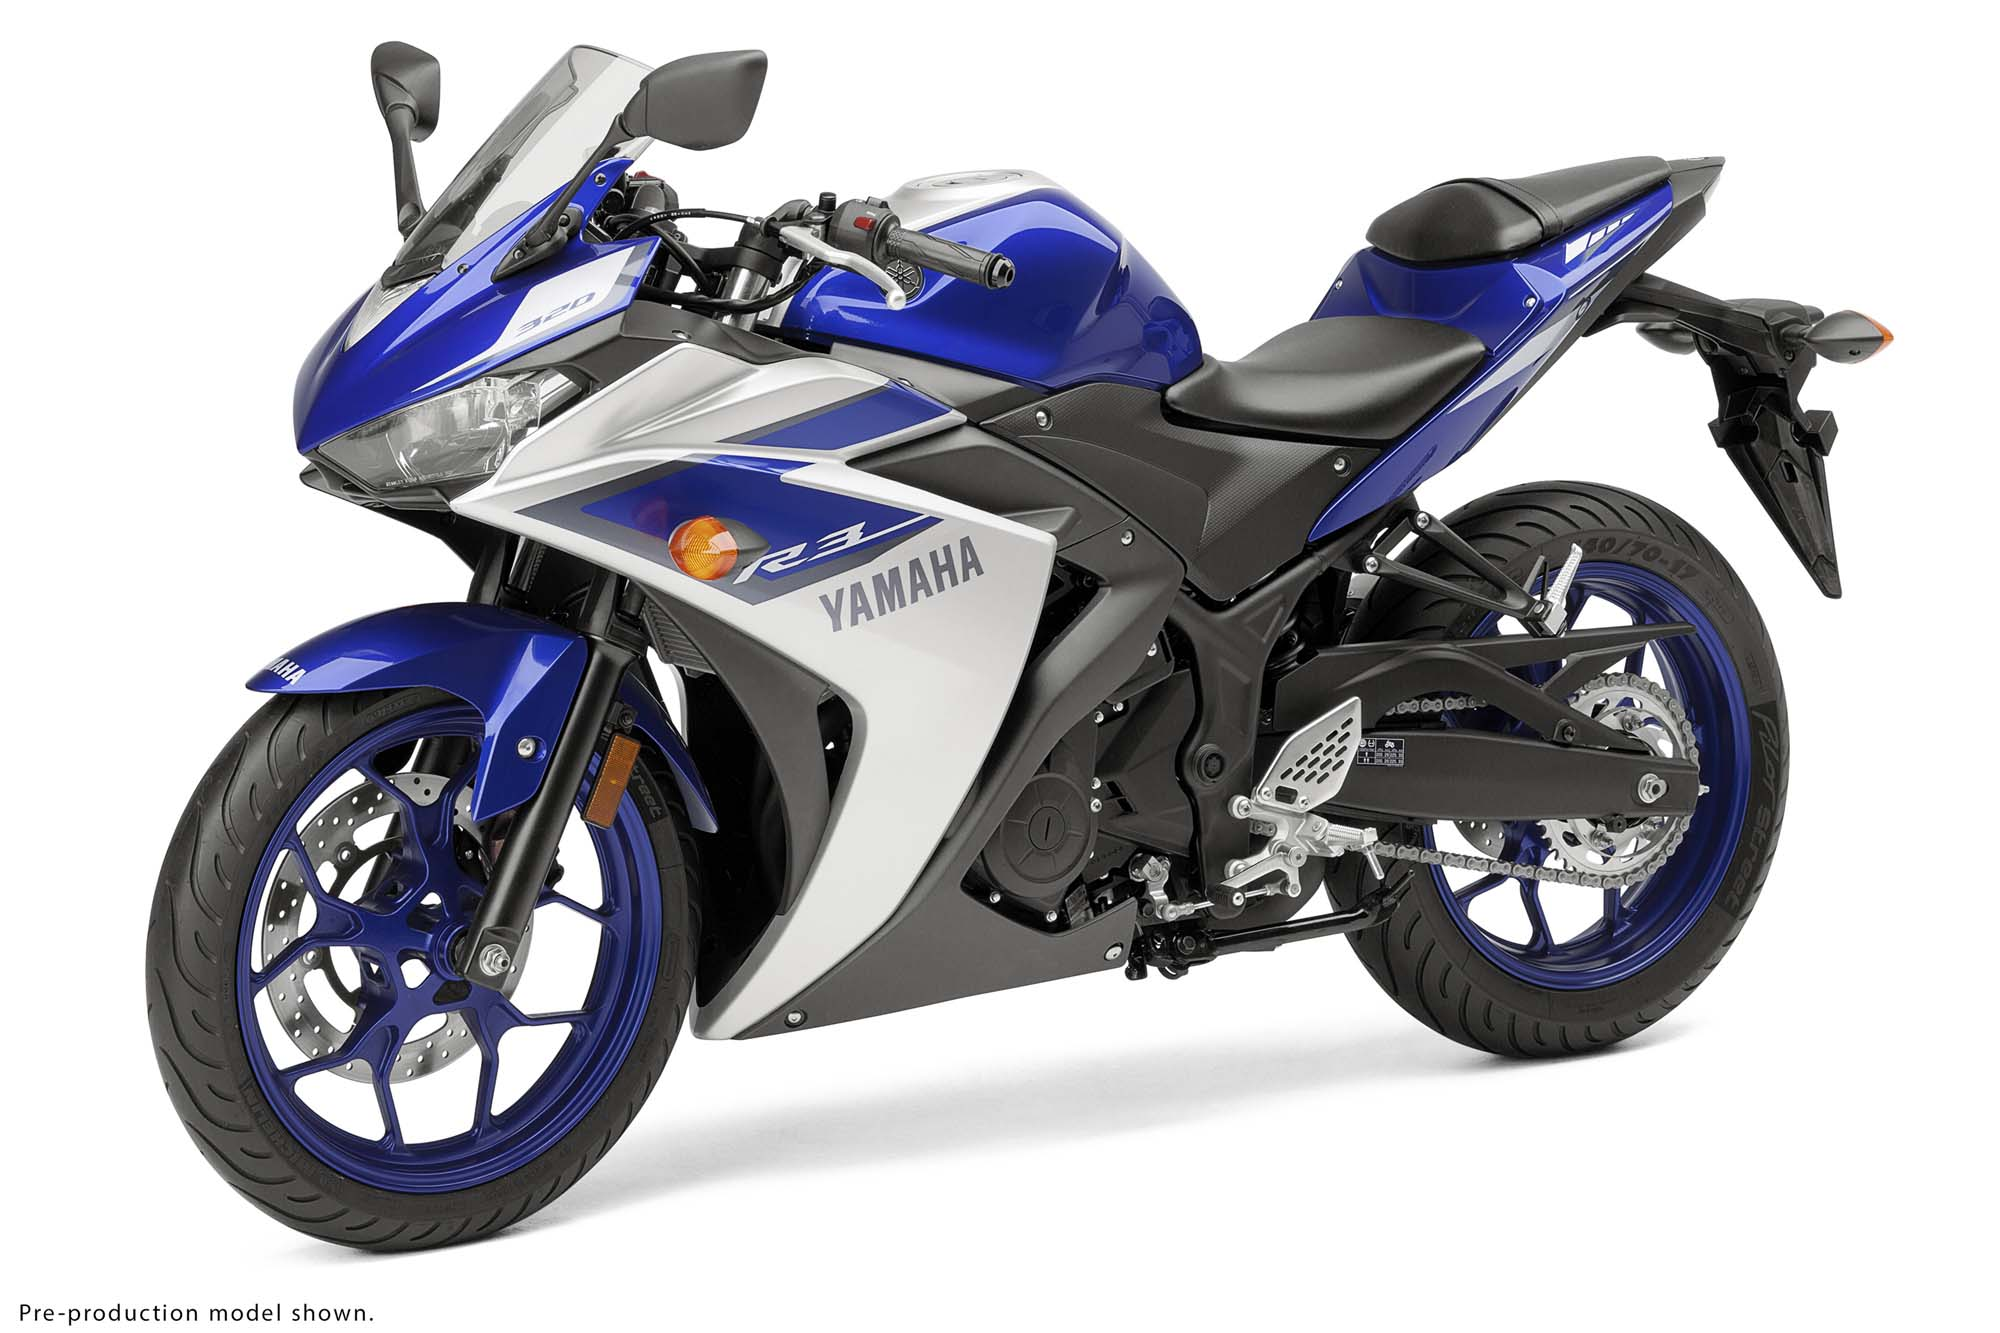 Yamaha Yzf-r3 Revealed - 321cc Twin Coming To The Usa